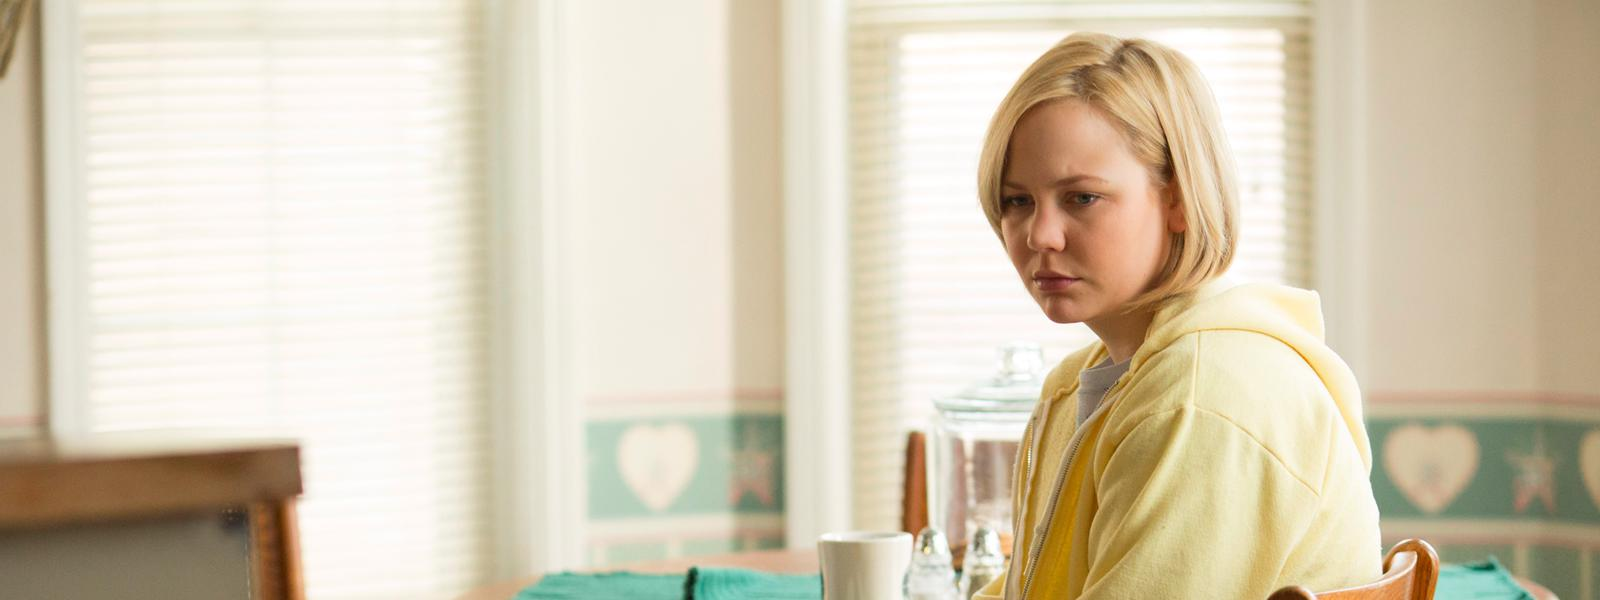 rectify-episode-301-hero-800×600